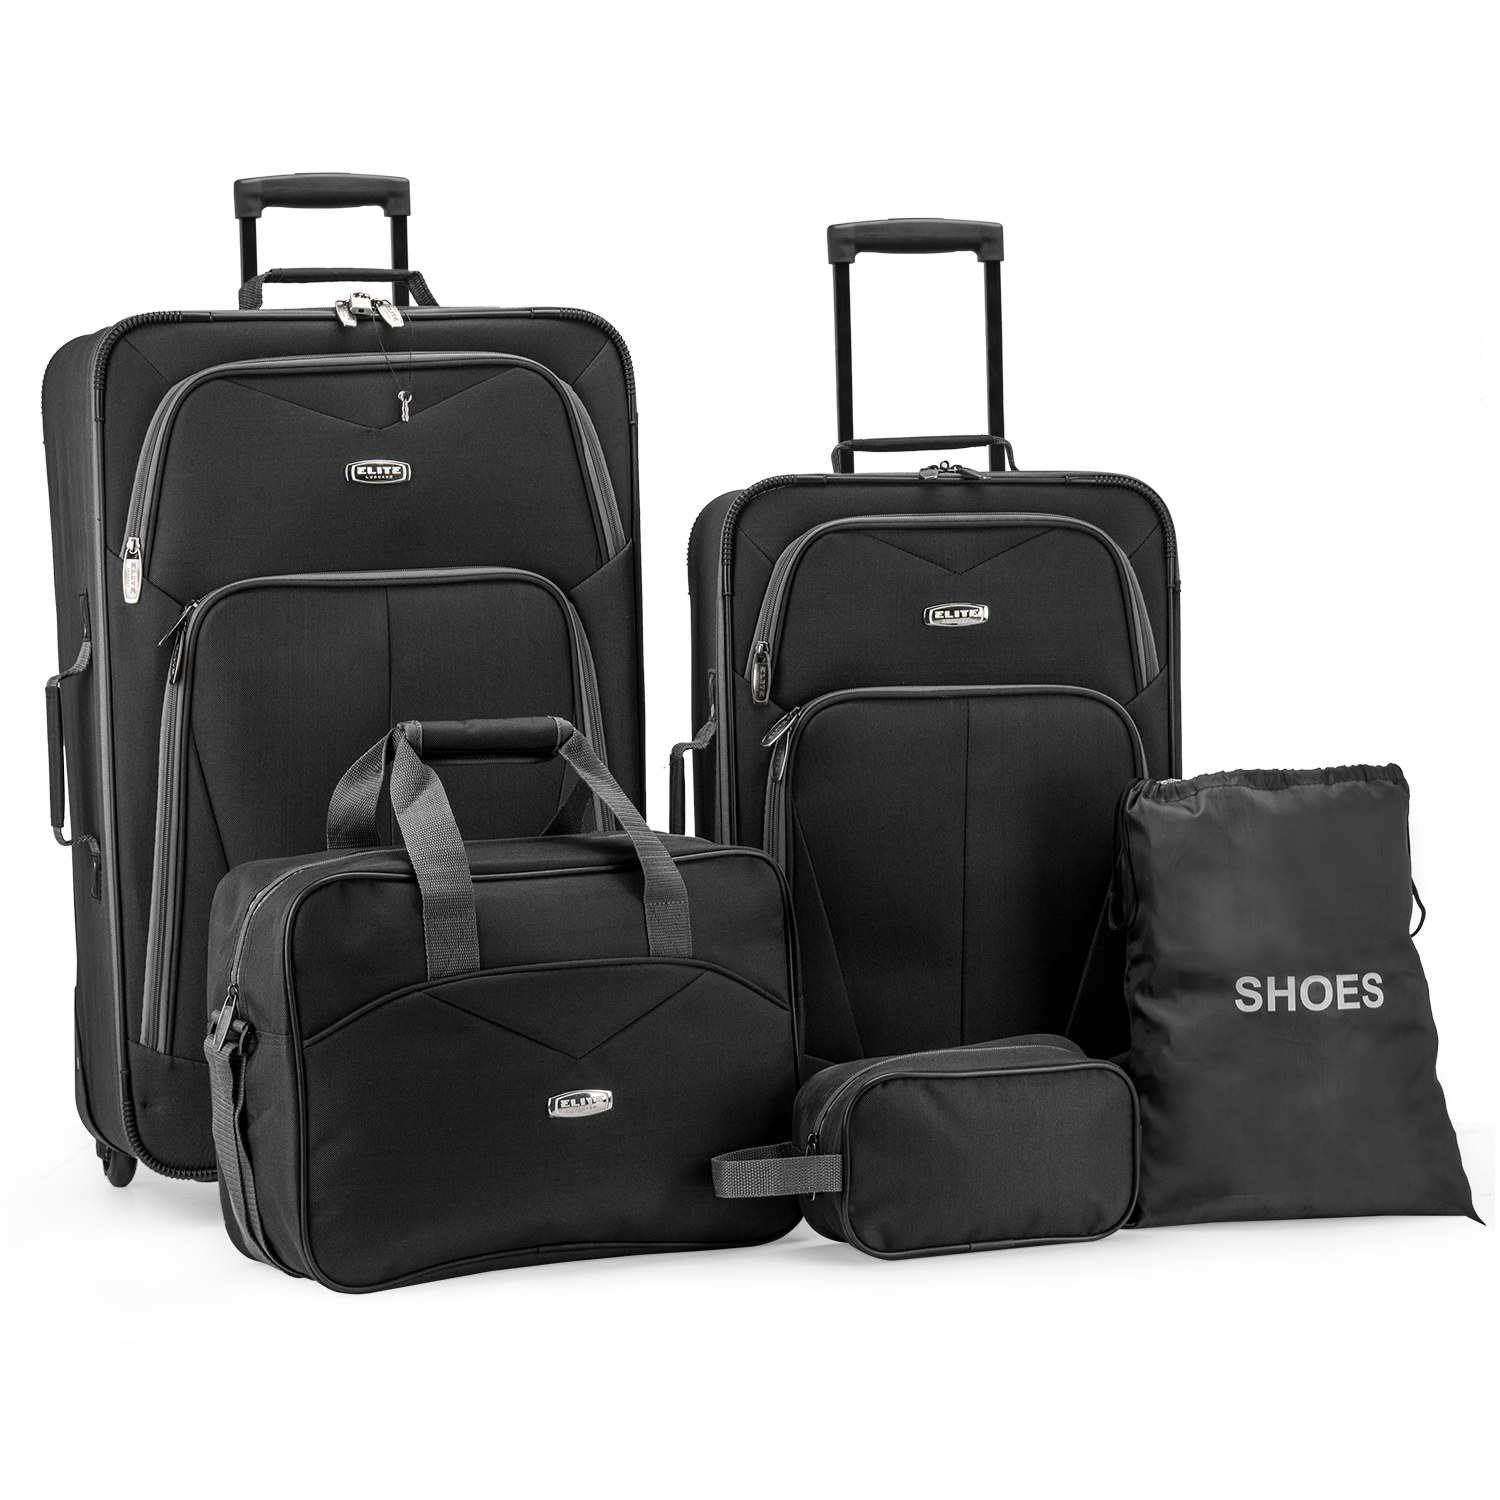 set of black luggage in various sizes